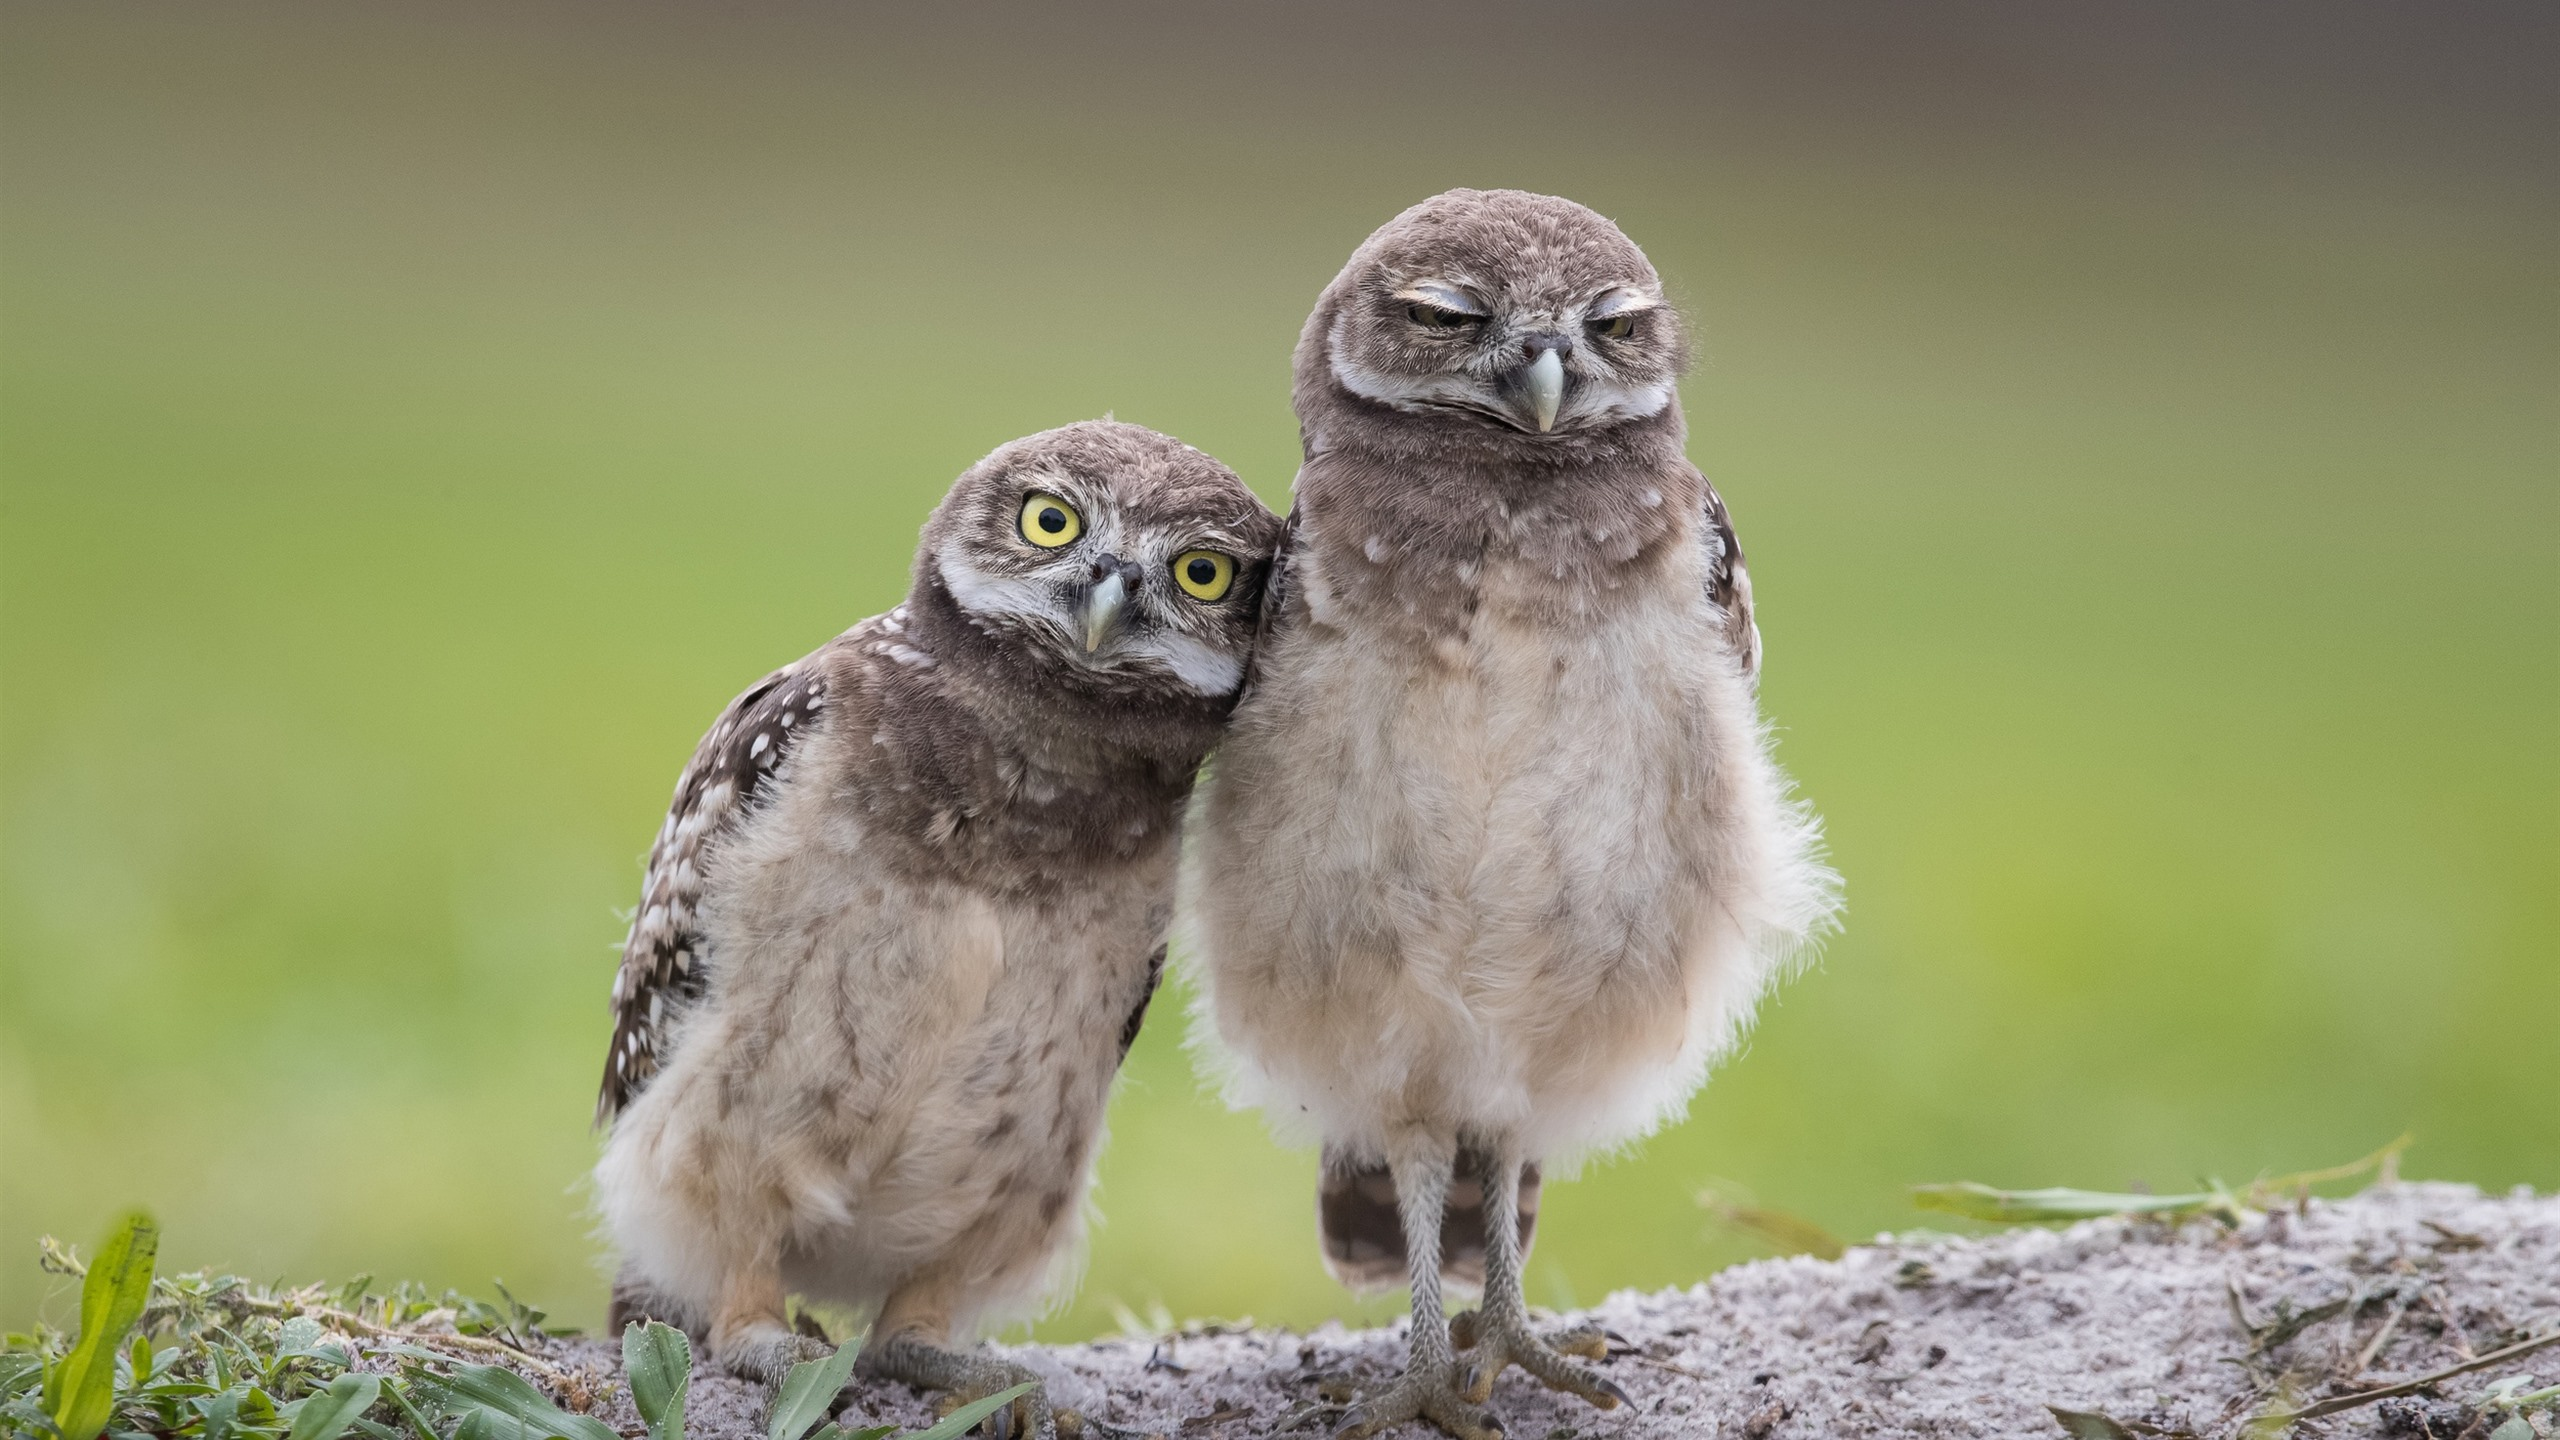 Wallpaper Two owls, birds 2560x1600 HD Picture, Image